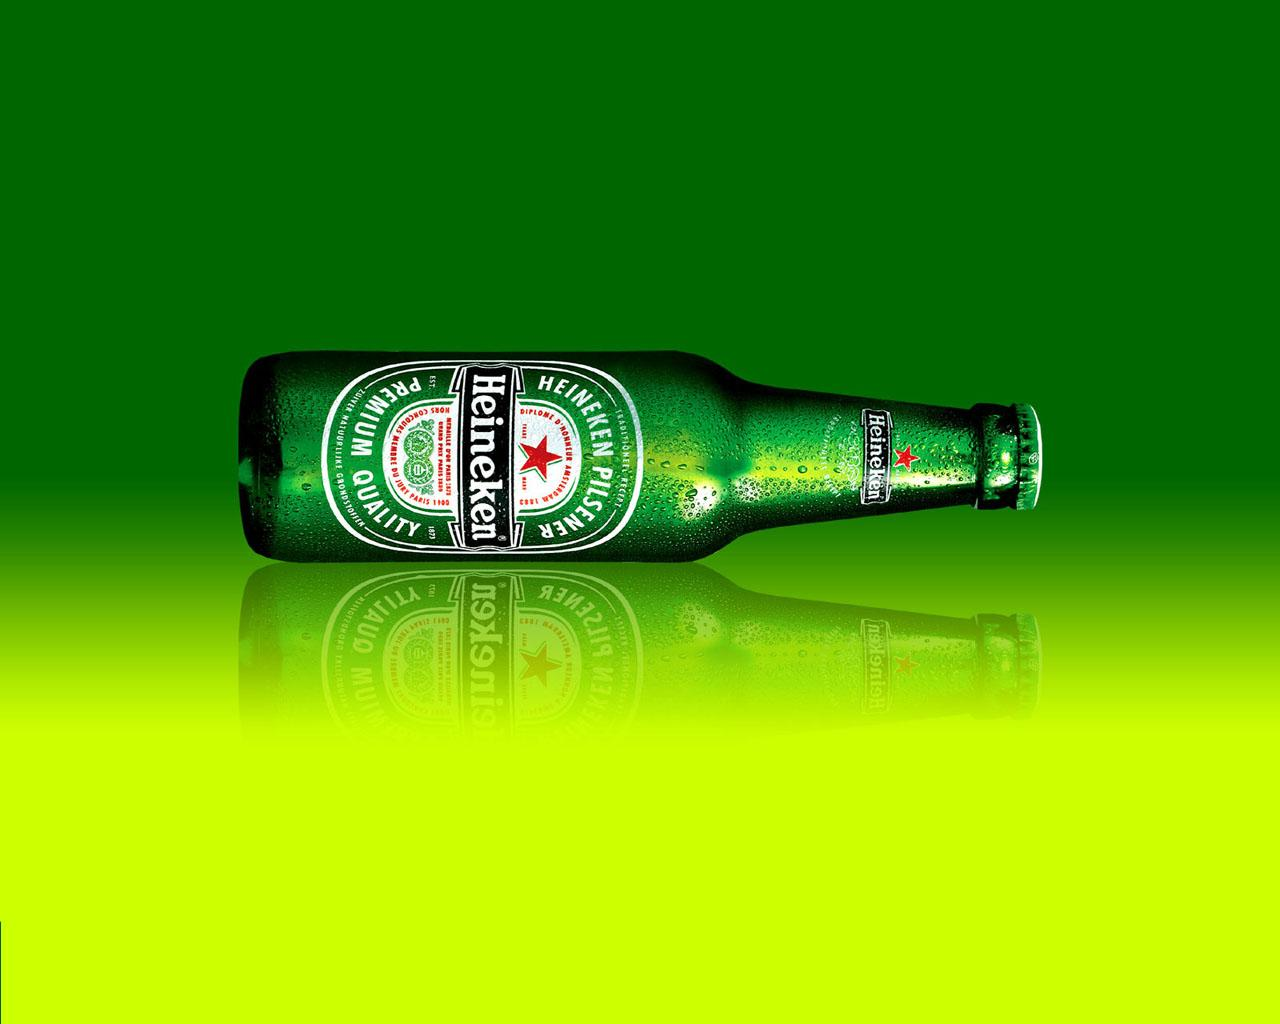 heineken environment analysis essay Welcome to our website a lot is happening at heineken we want to share it with you and we want to hear your opinions we are committed to communicating responsibly.